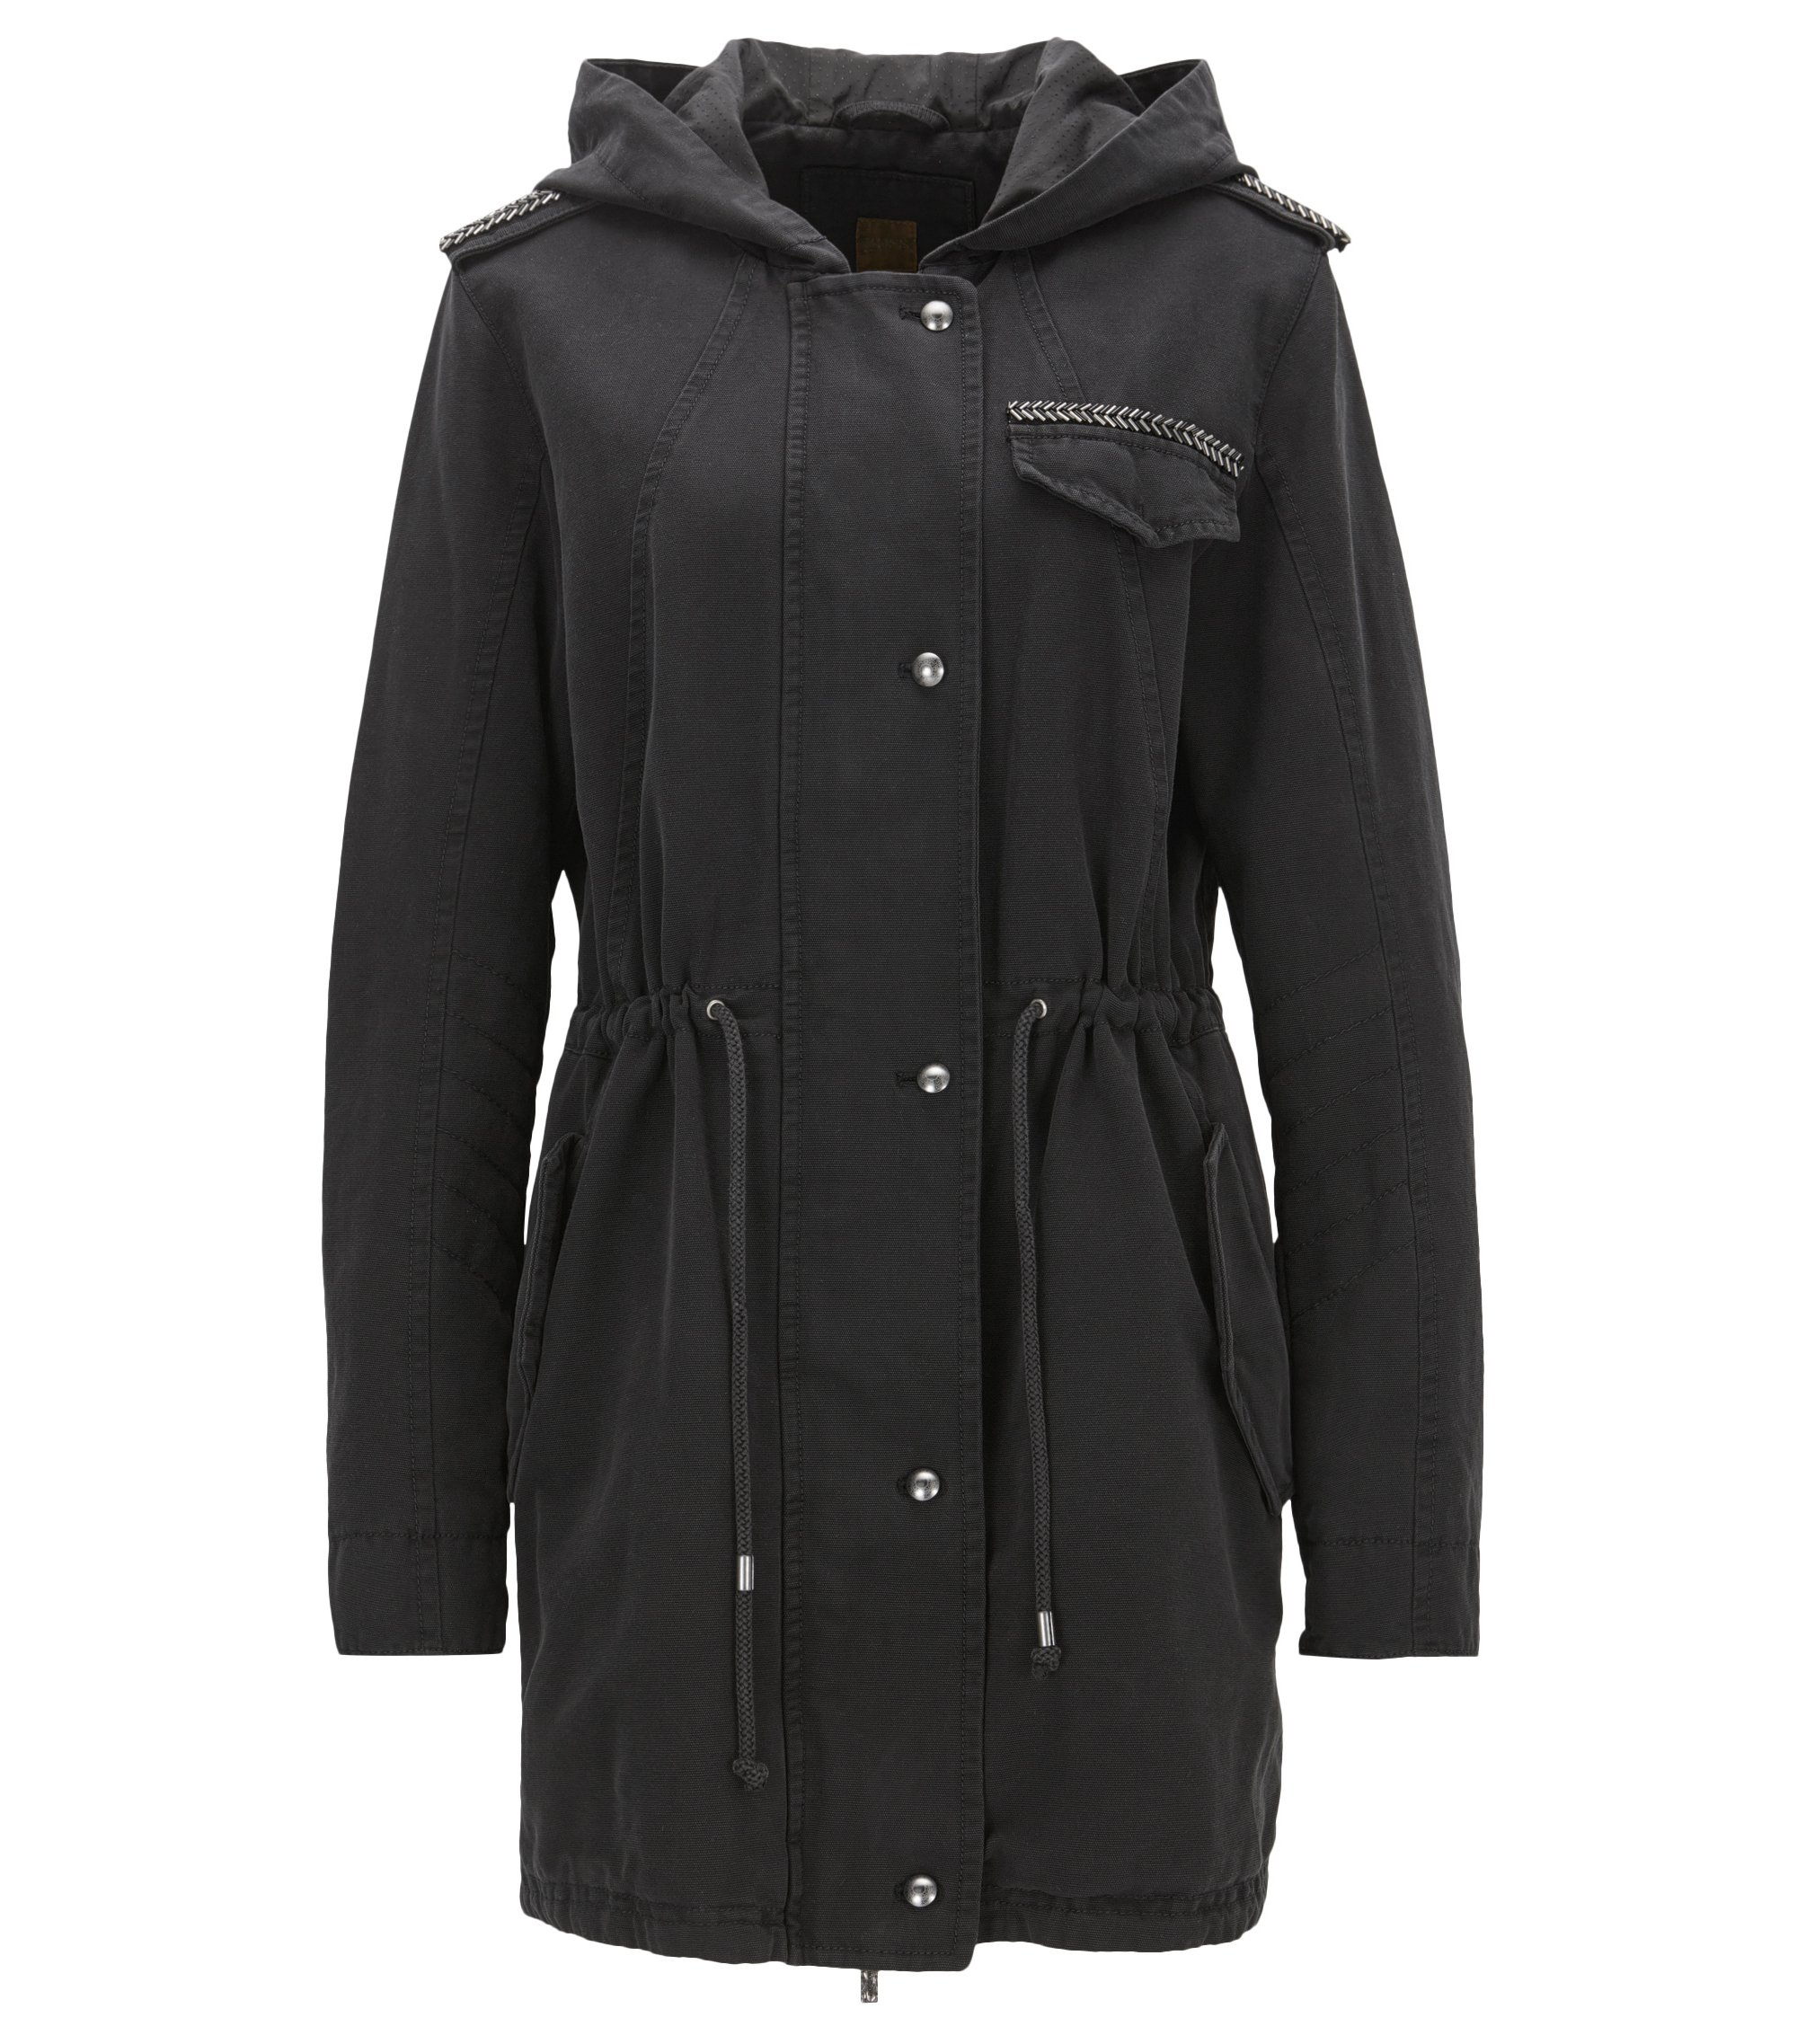 Parka Regular Fit en coton structuré lavé, Noir